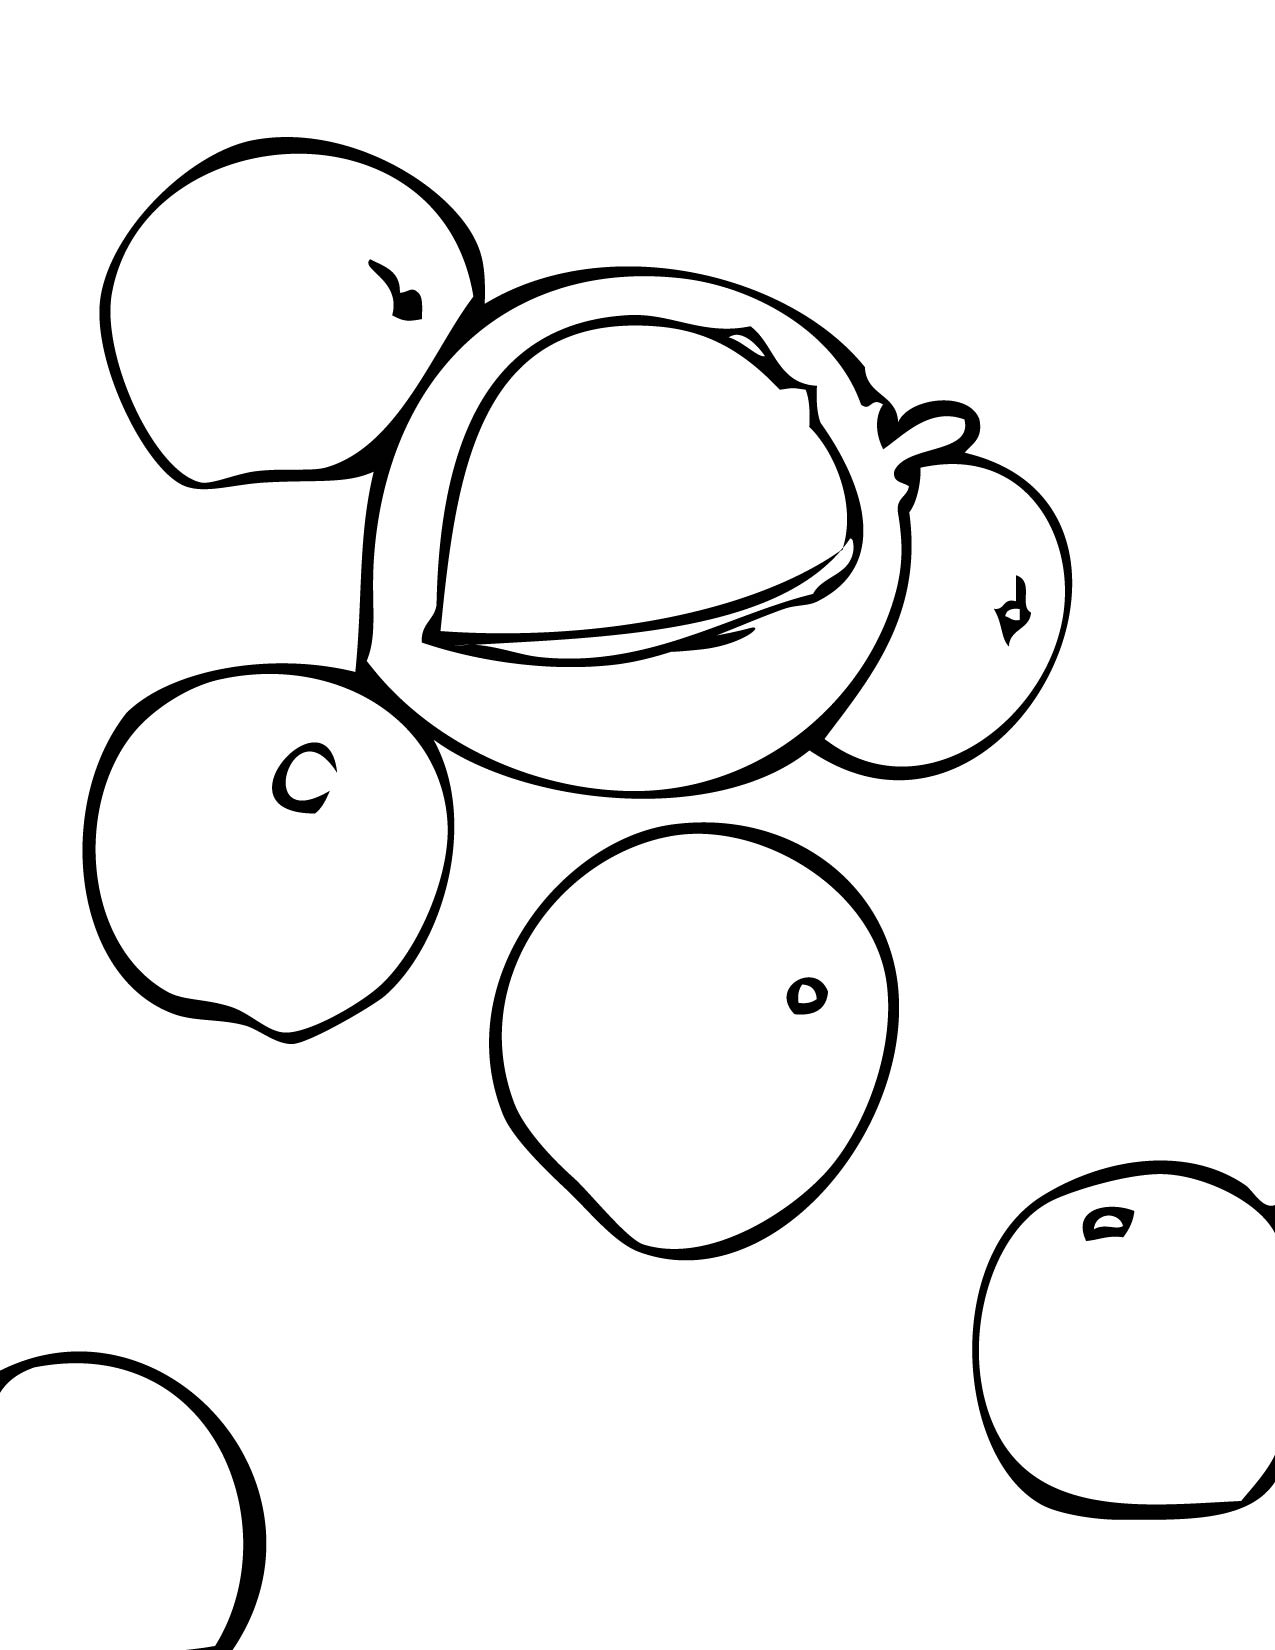 Nut clipart coloring Clipart Clipart DrawingImage Nut Coloring